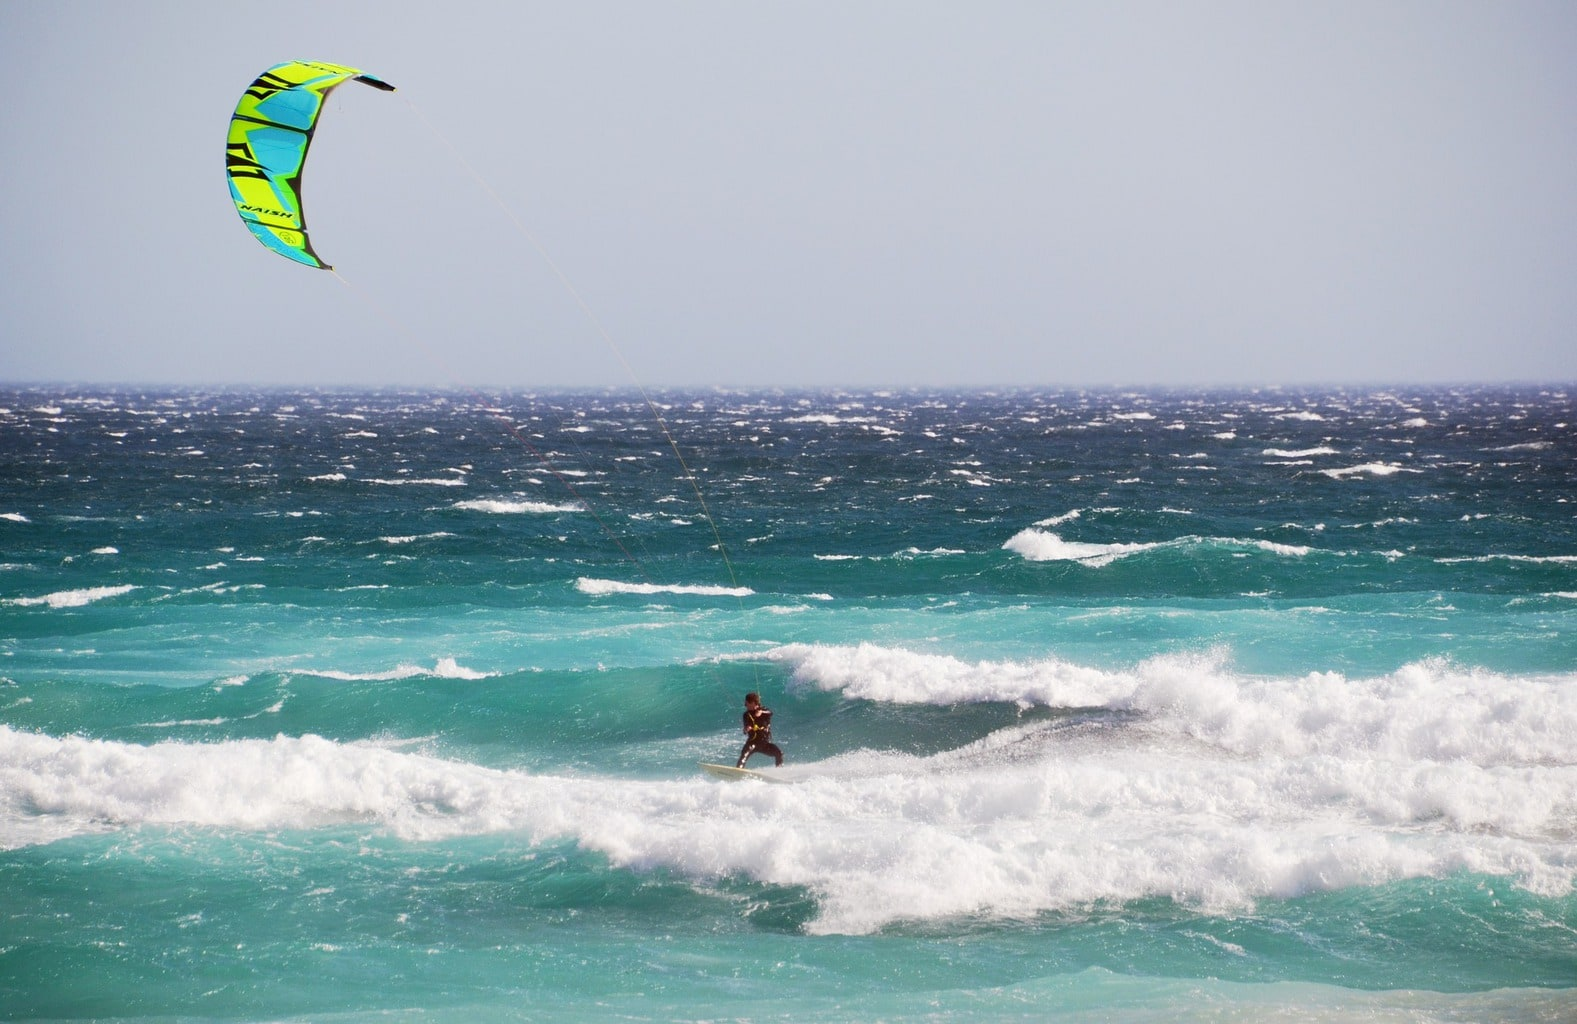 When the winds are up, it's your chance for kiting